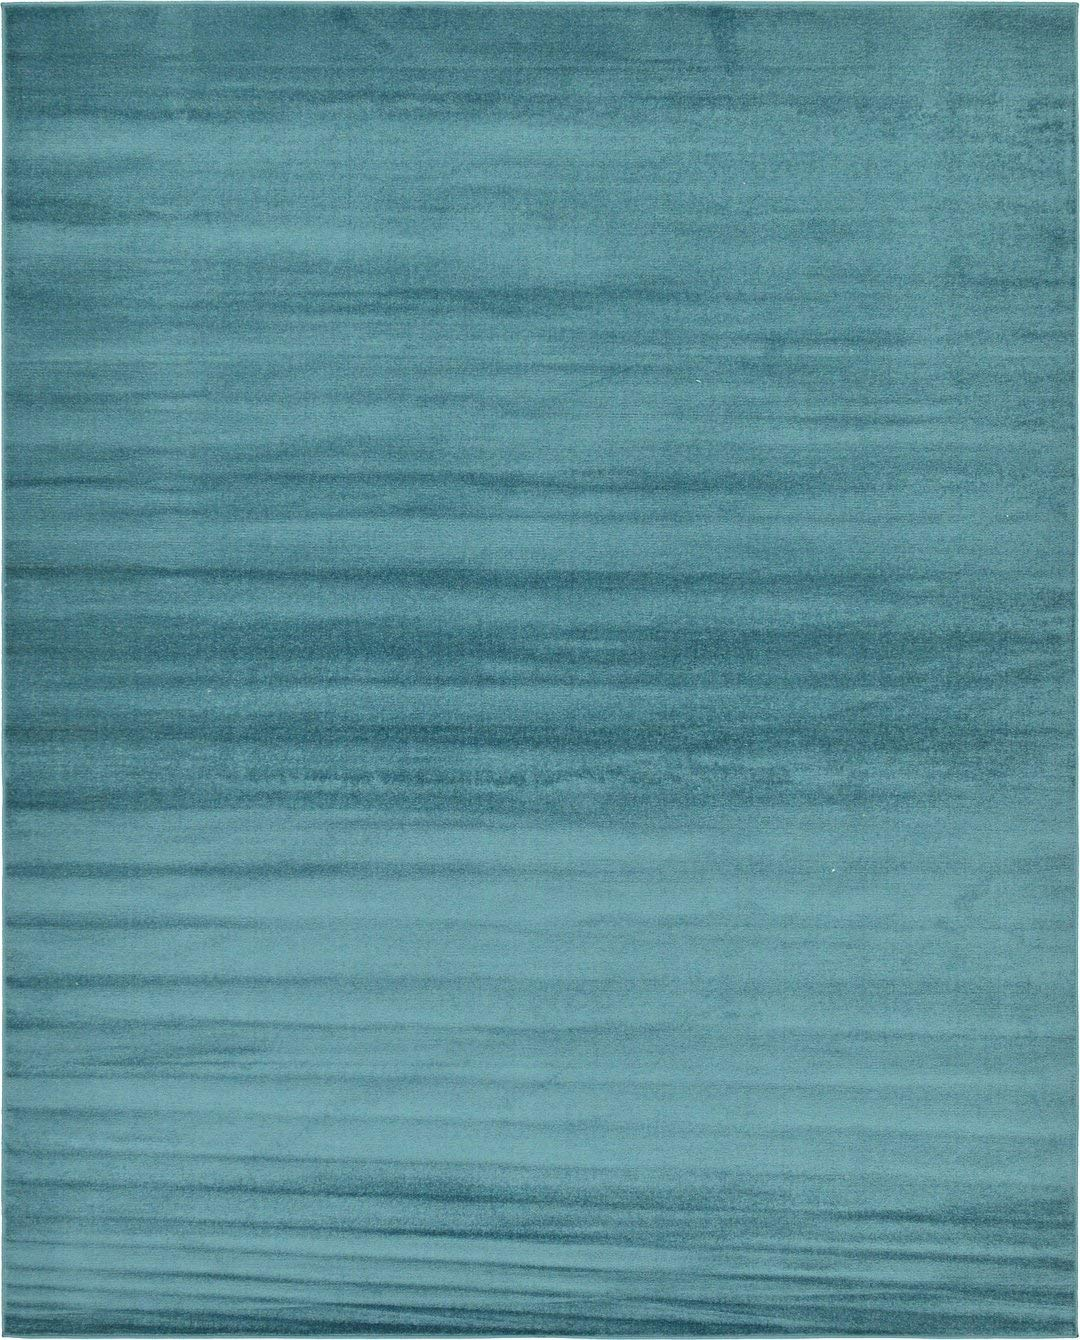 A2Z Rug Modern Caen Collection Rugs Teal 8' x 10' -Feet Area rug